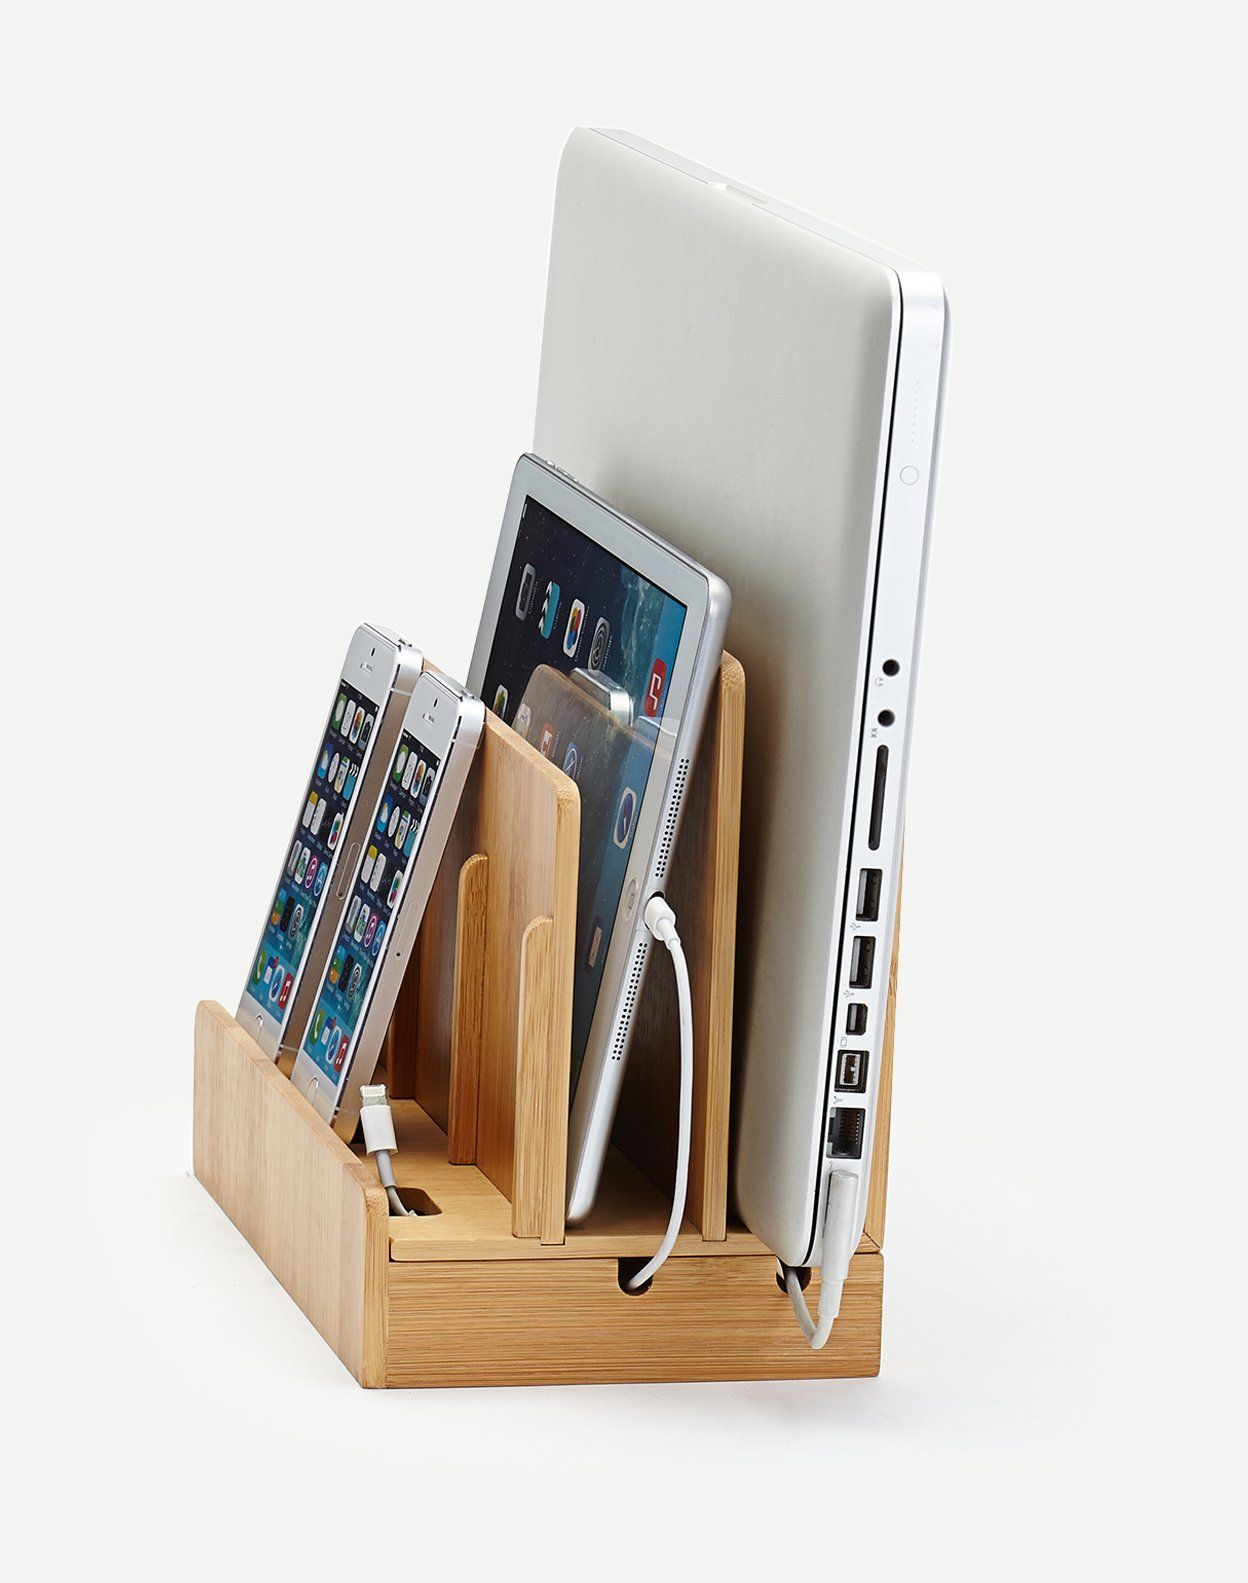 The G U S Bamboo Multi Device Charging Station And Dock With Universal Compatibility By Great Useful Stuff Cell Phones Accessories